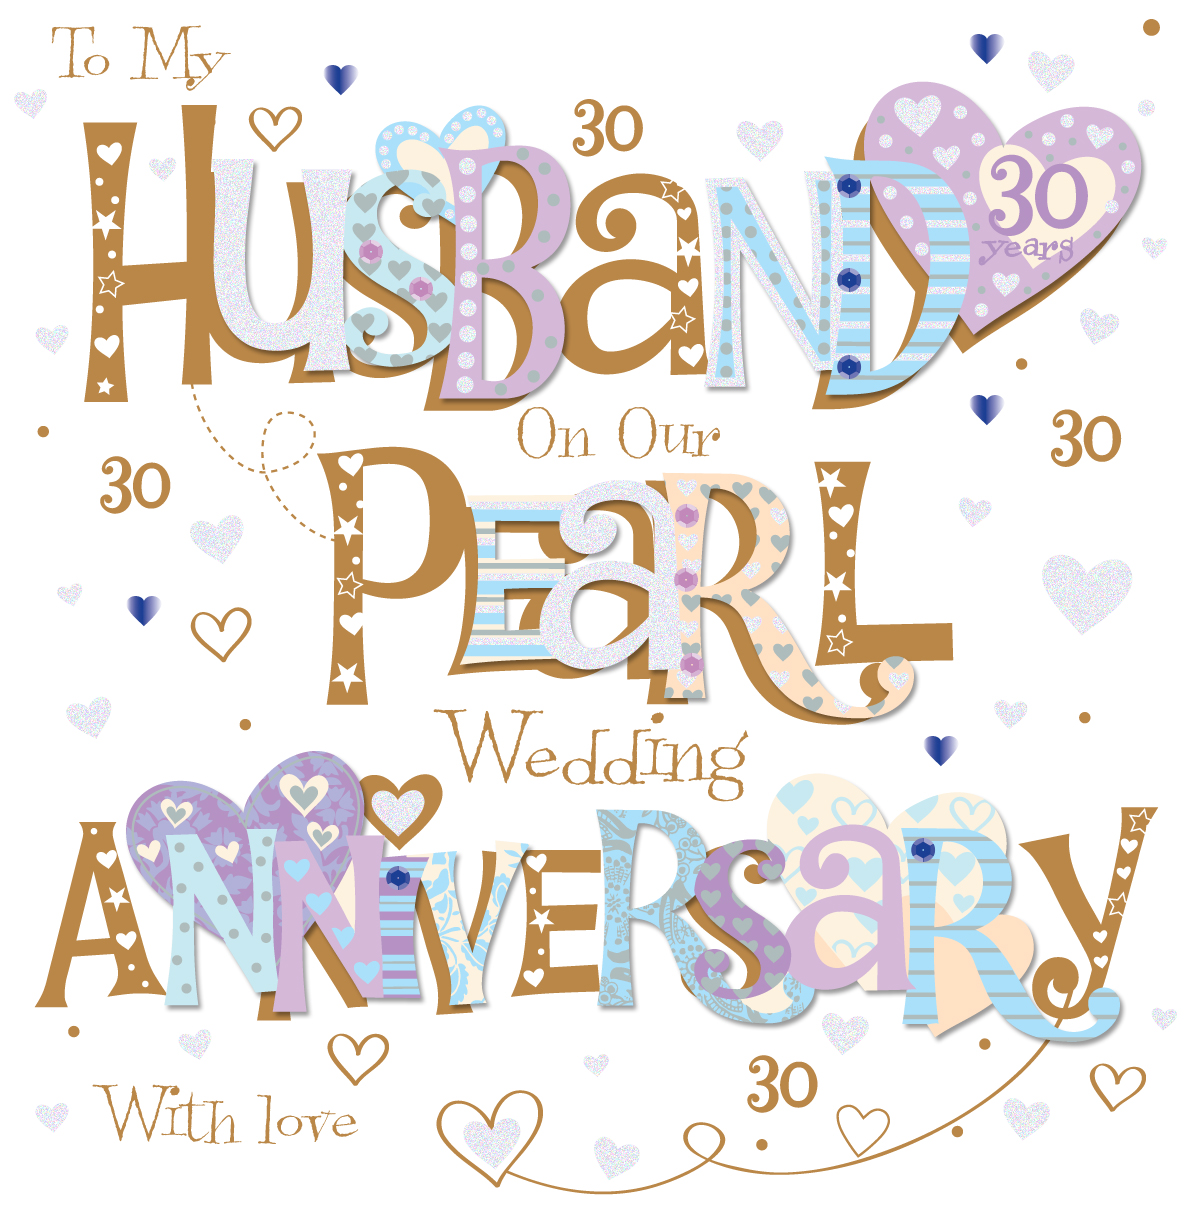 husband pearl 30th wedding anniversary greeting card cards love